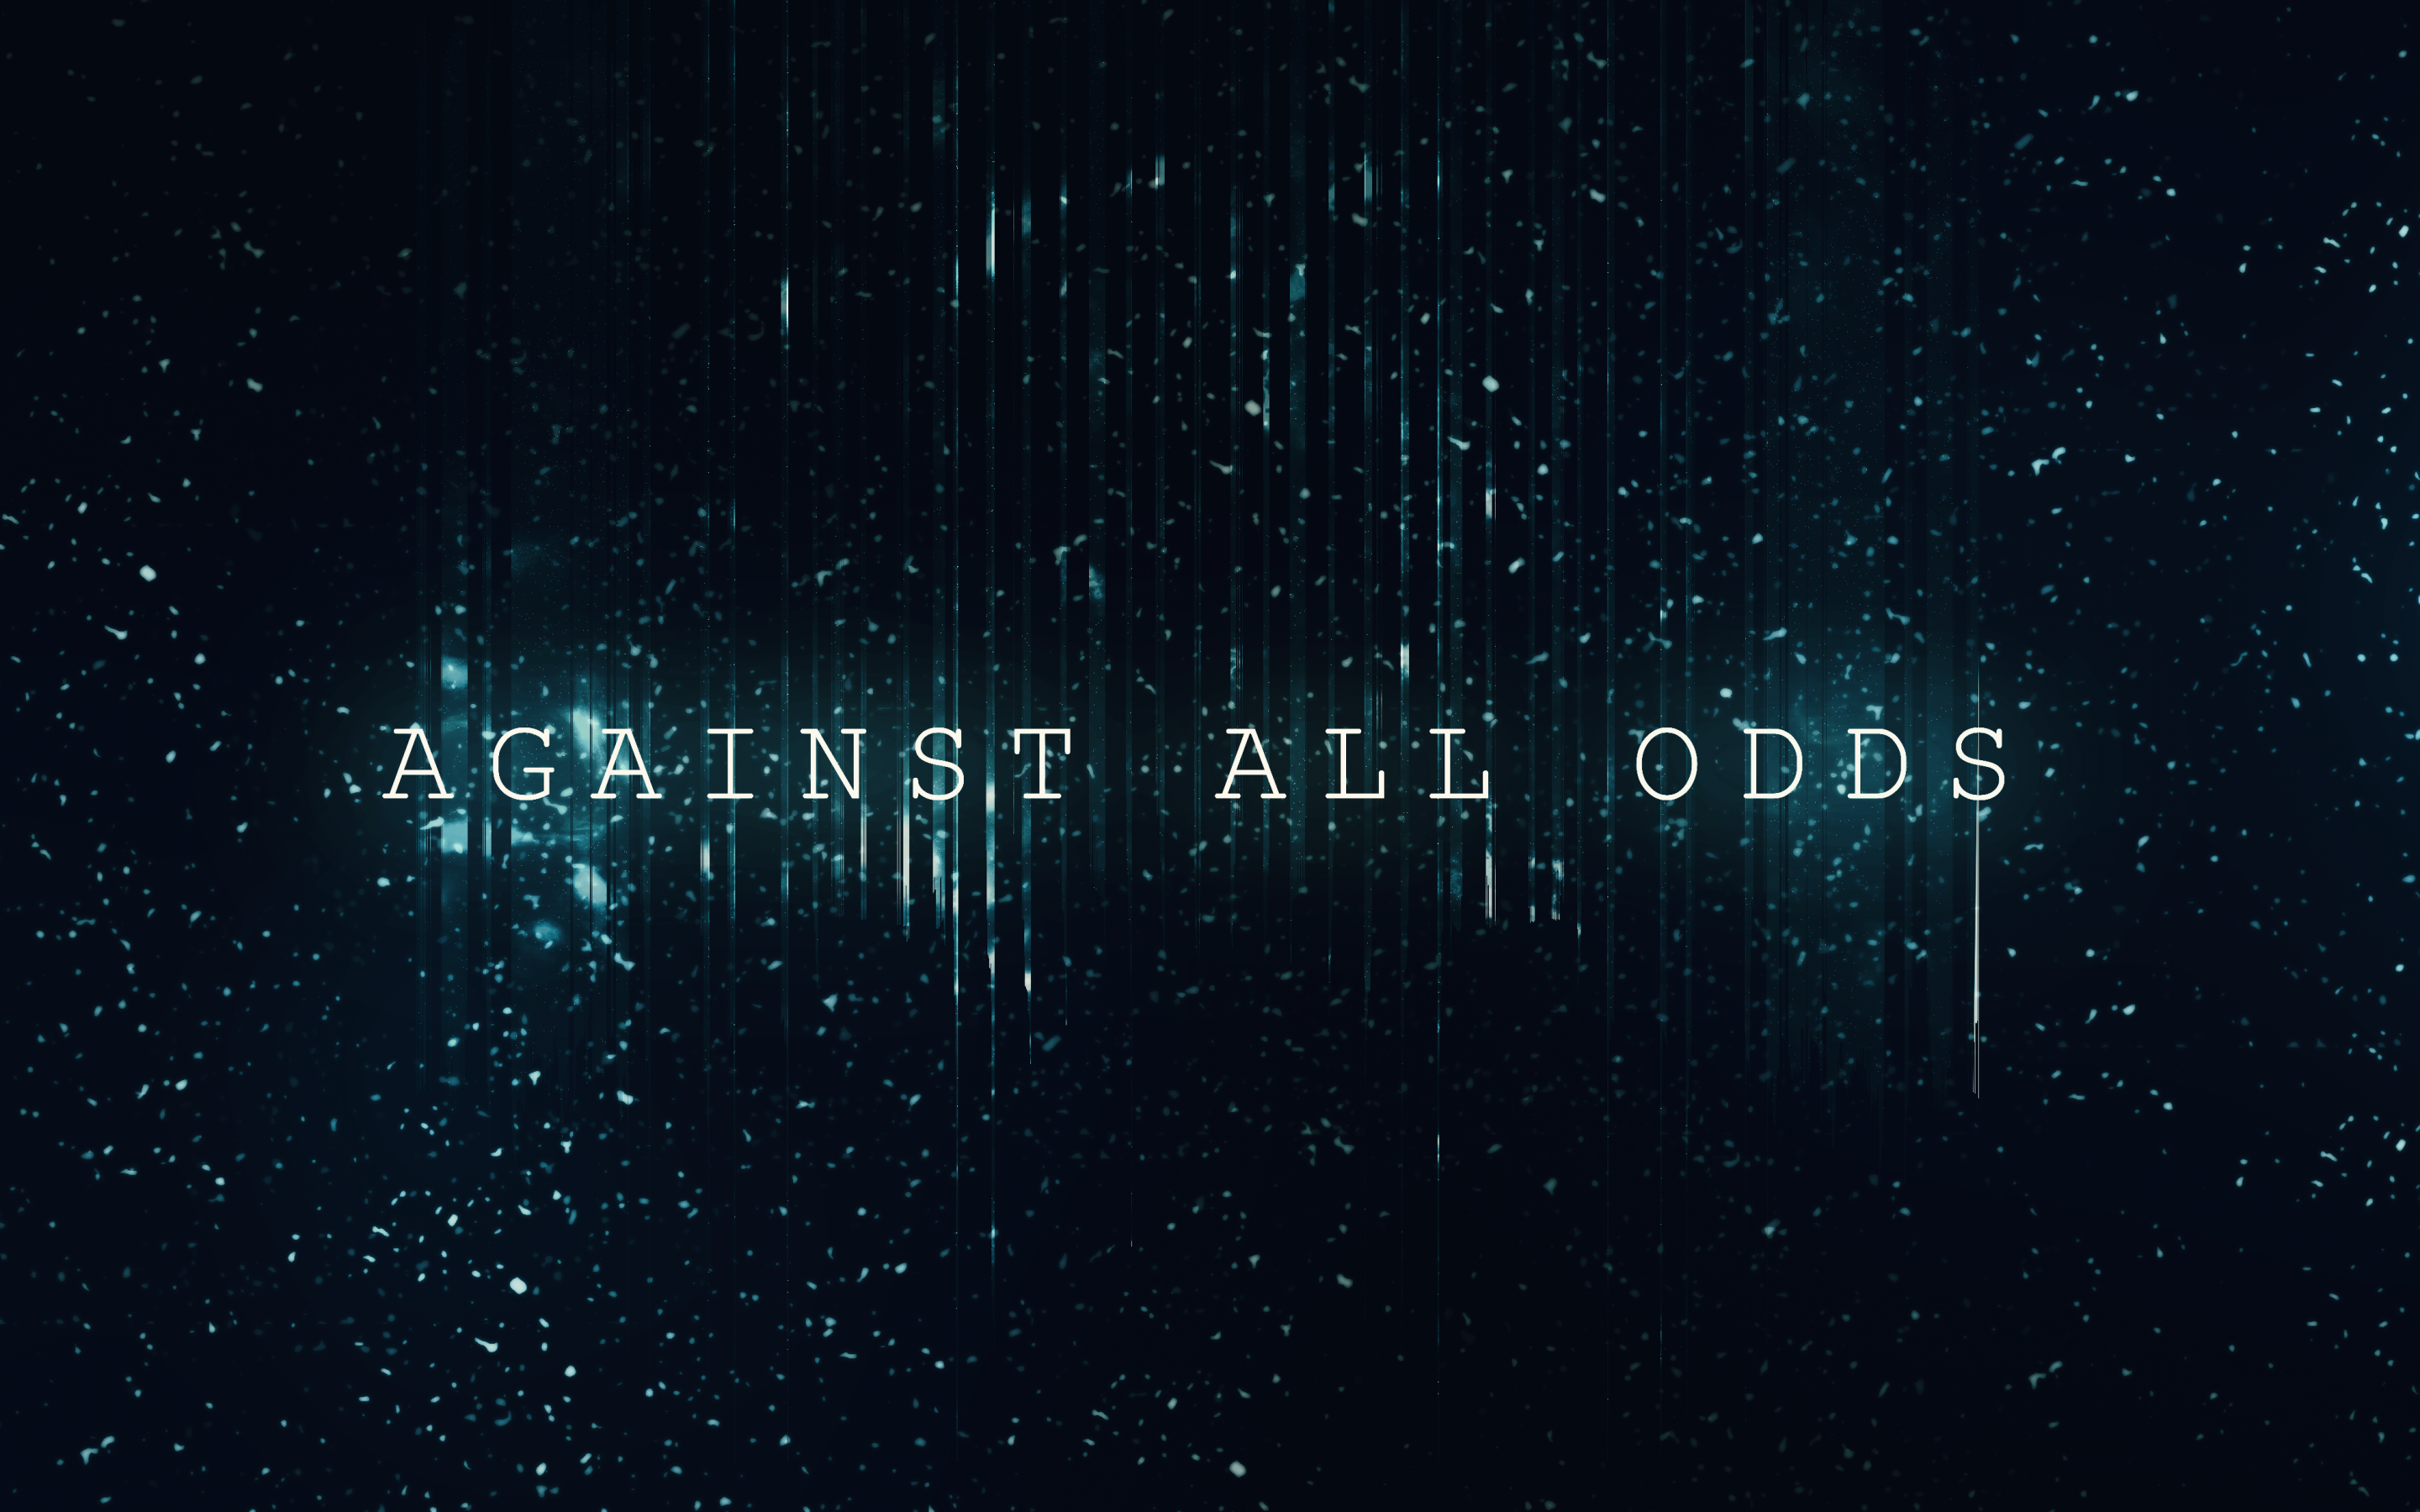 Download 2880x1800 Against All Odds, Motivational Quote Wallpapers for MacBook Pro 15 inch